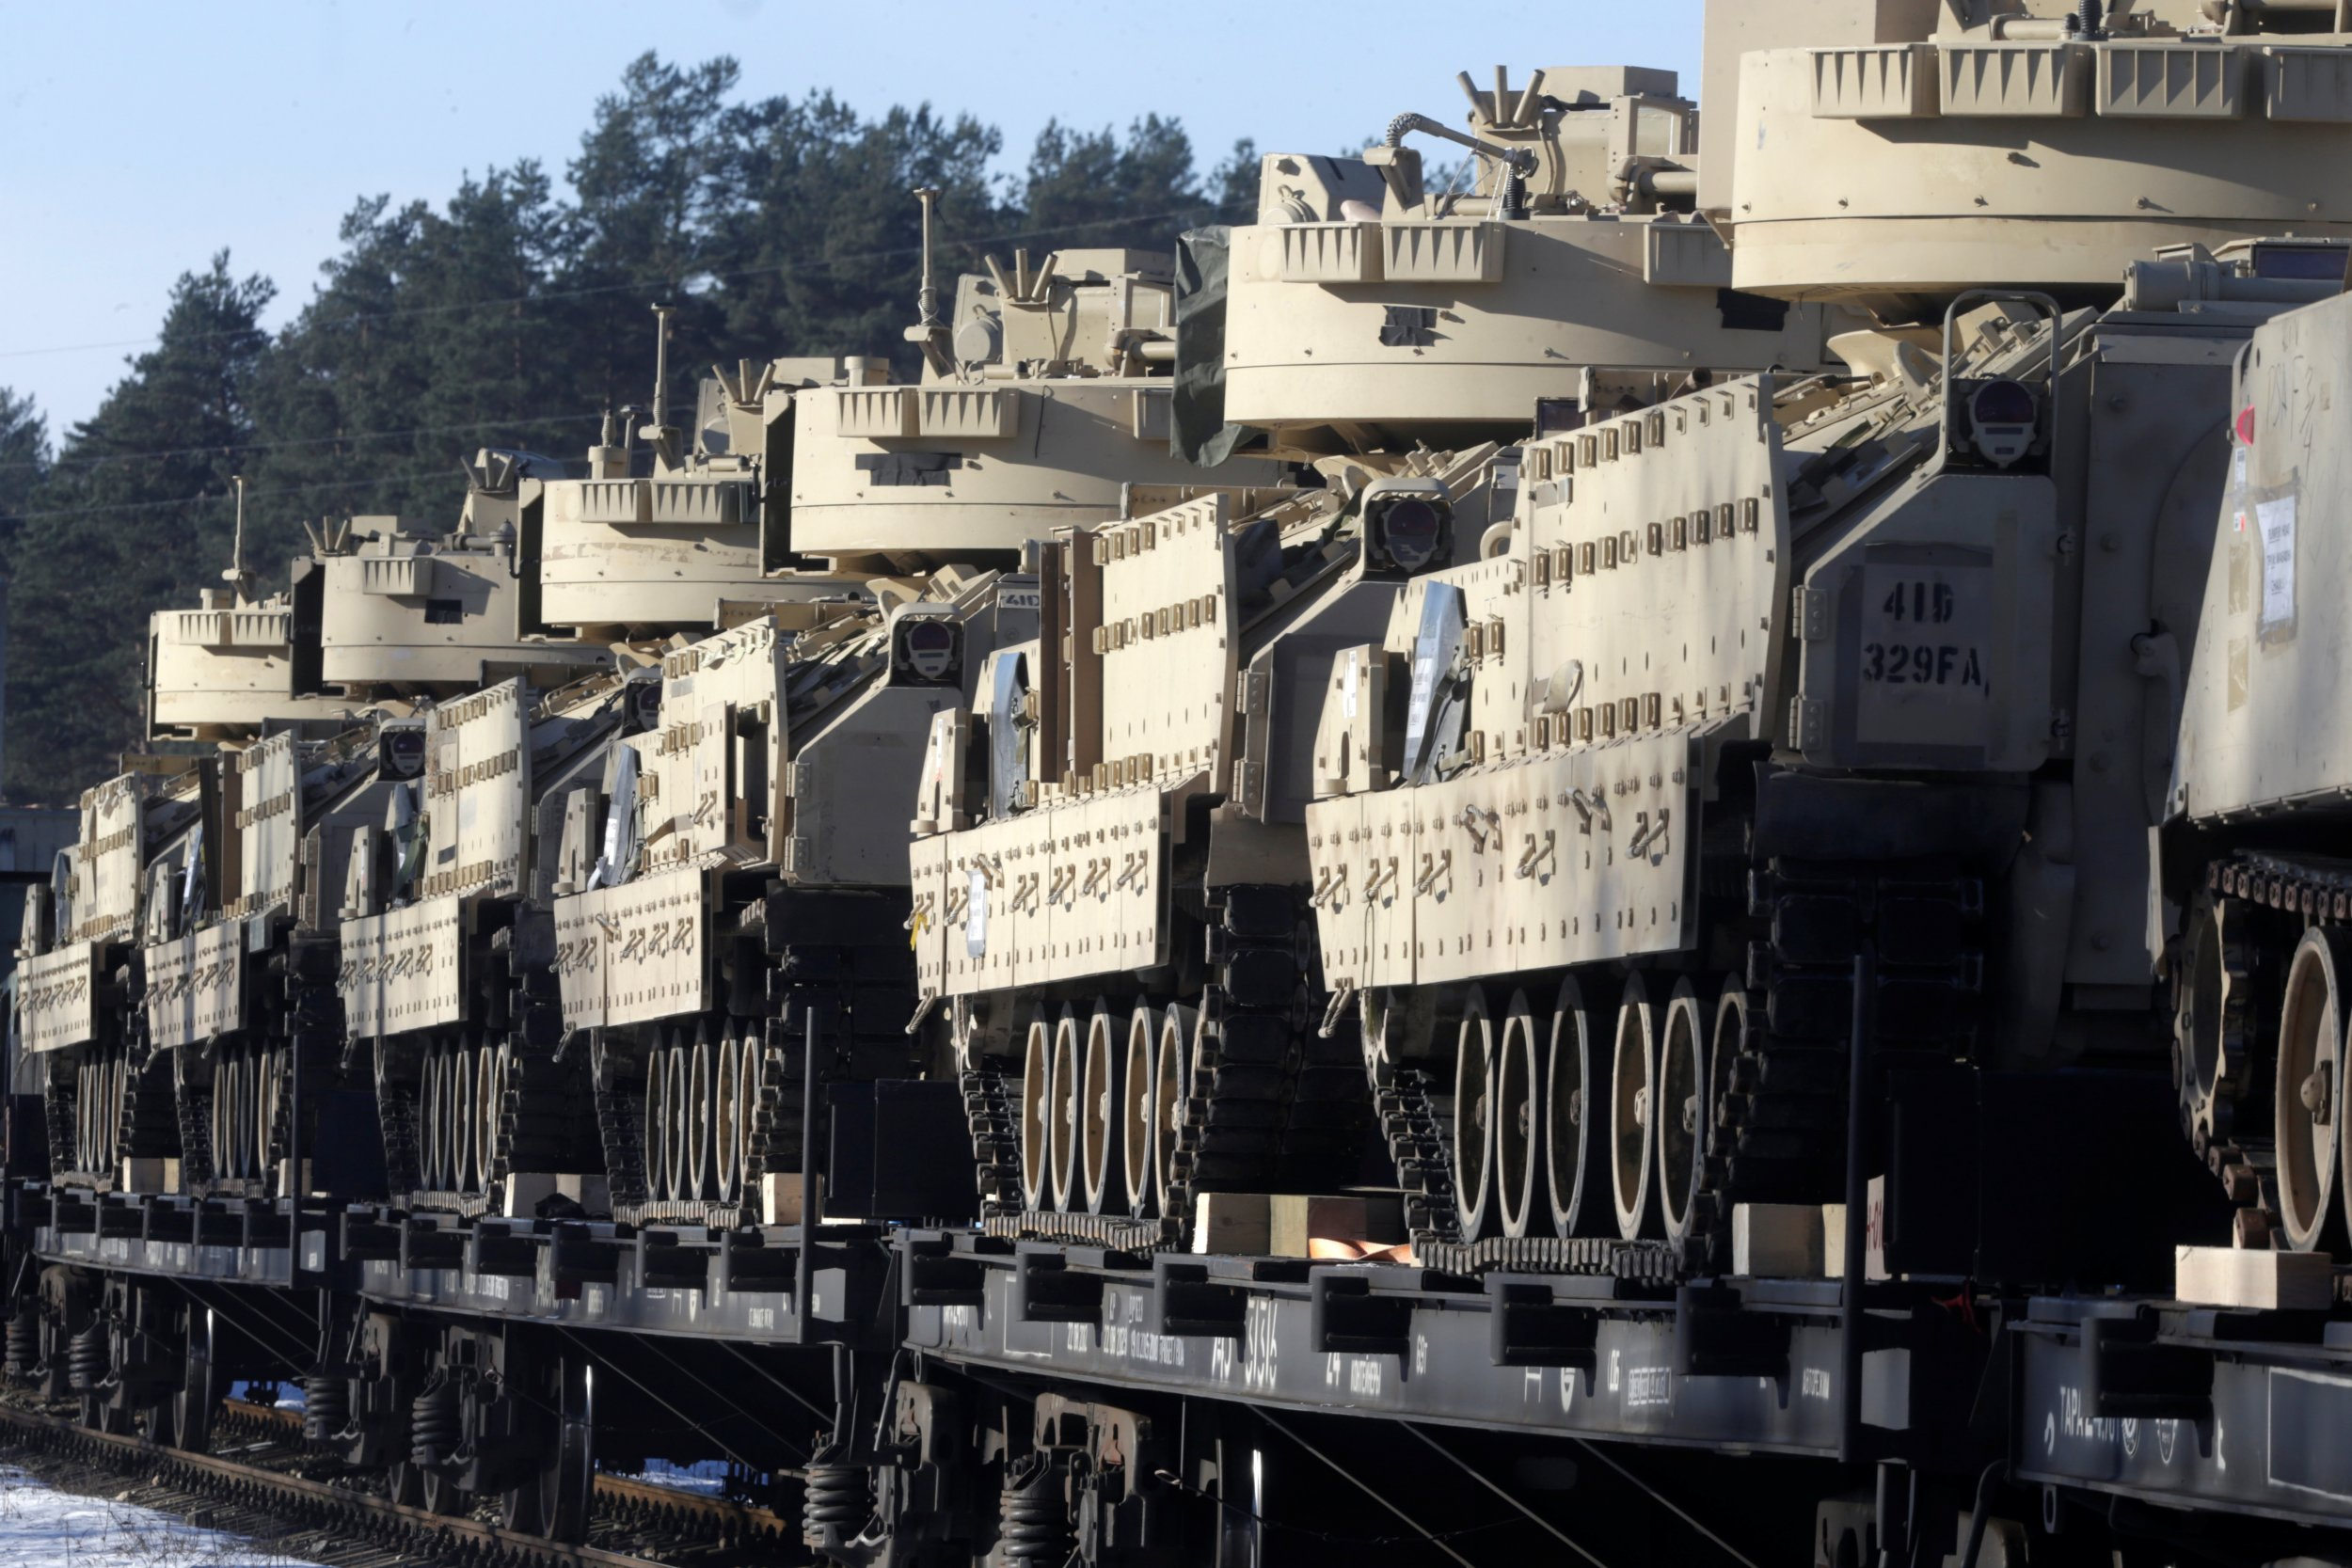 U.S. Bradley vehicles